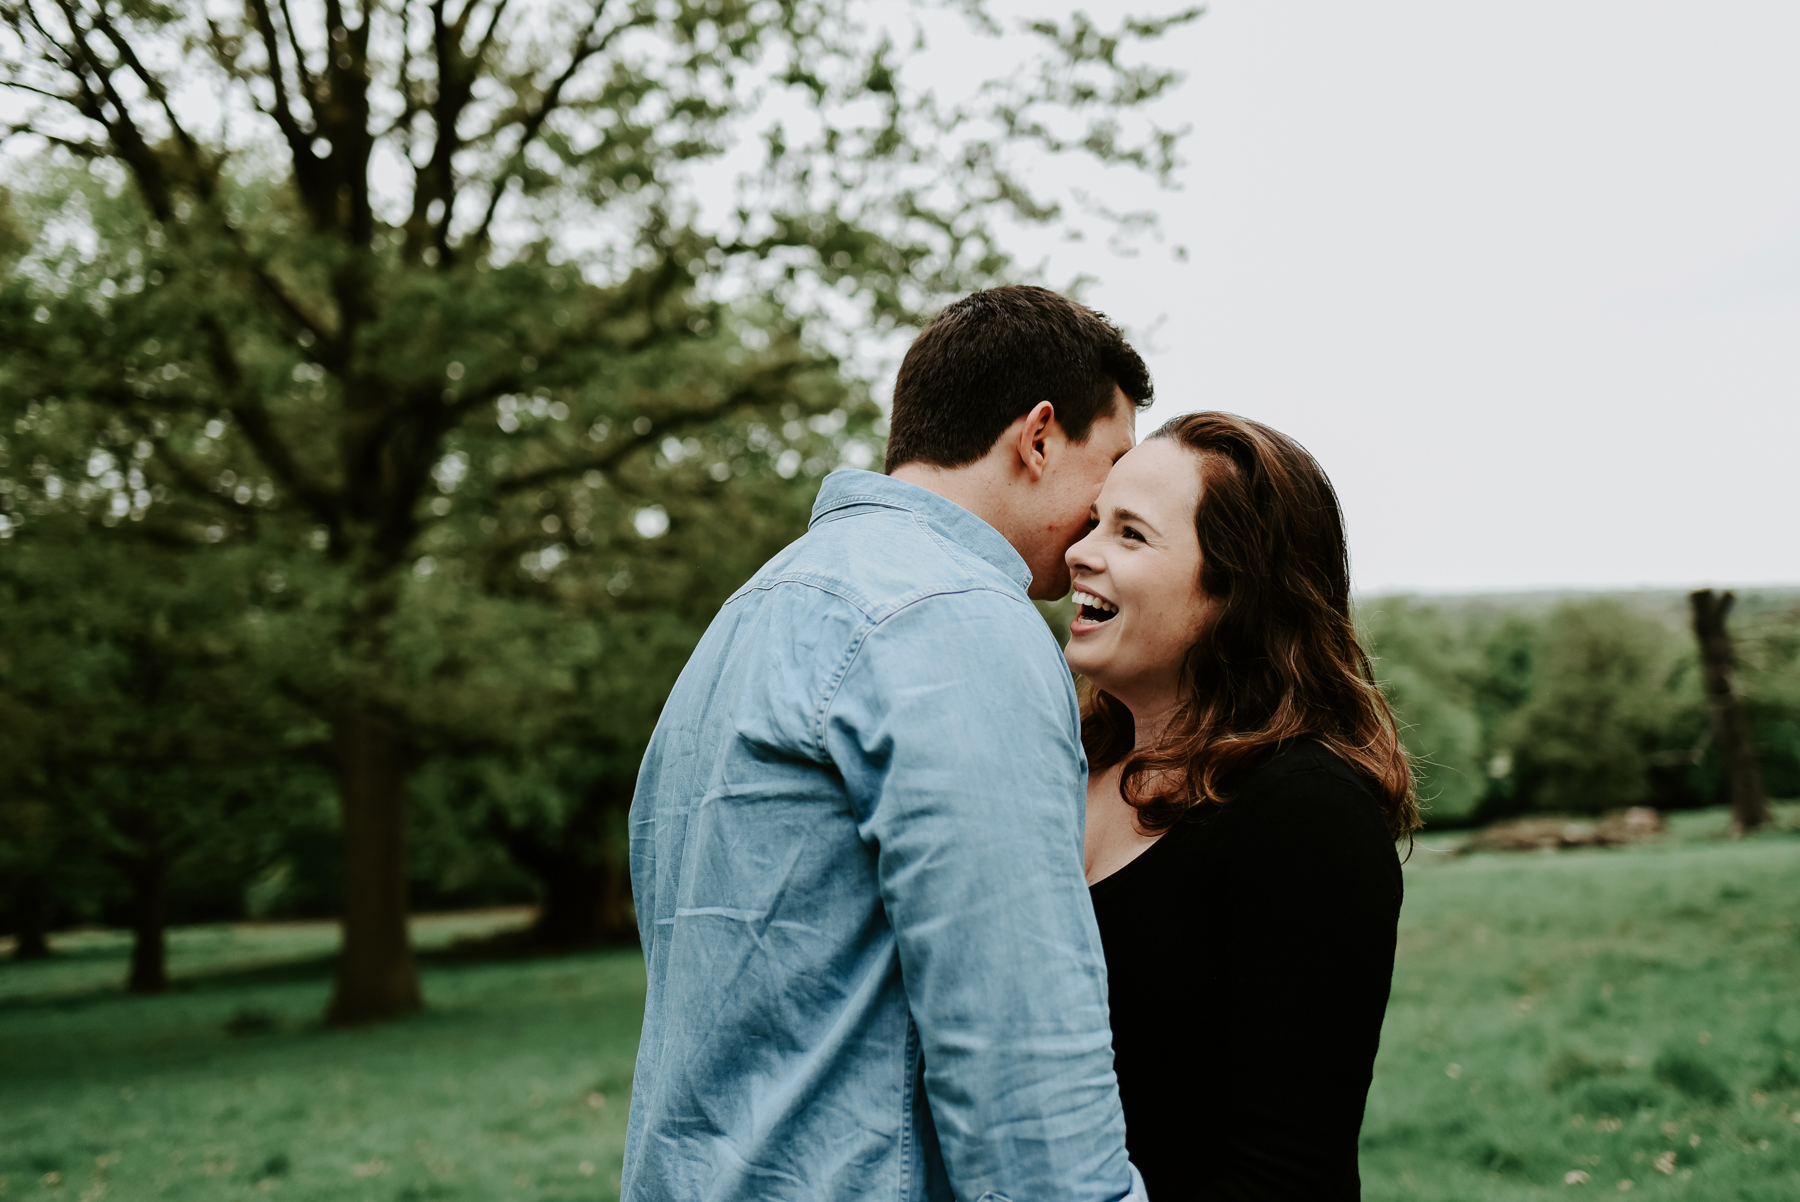 A playful portrait of a couple in Richmond park. He is whispering something into her ear and she is laughing.